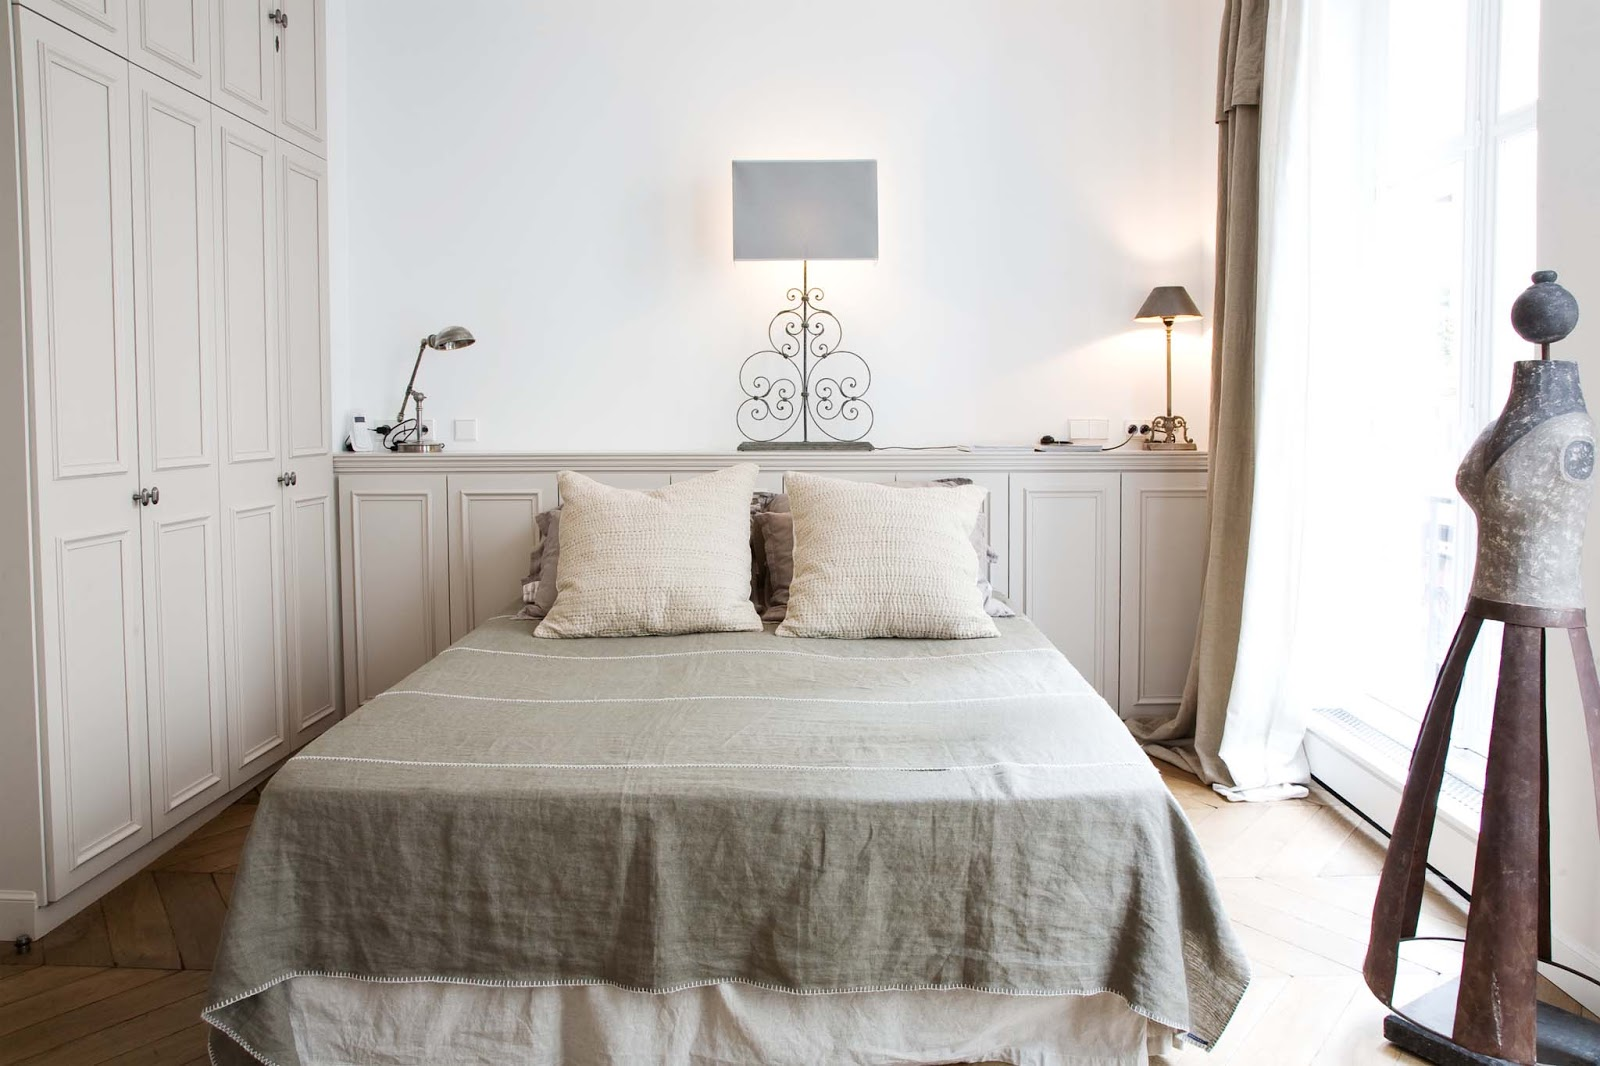 Home Tour: Paris Apartment Decor in the Marais